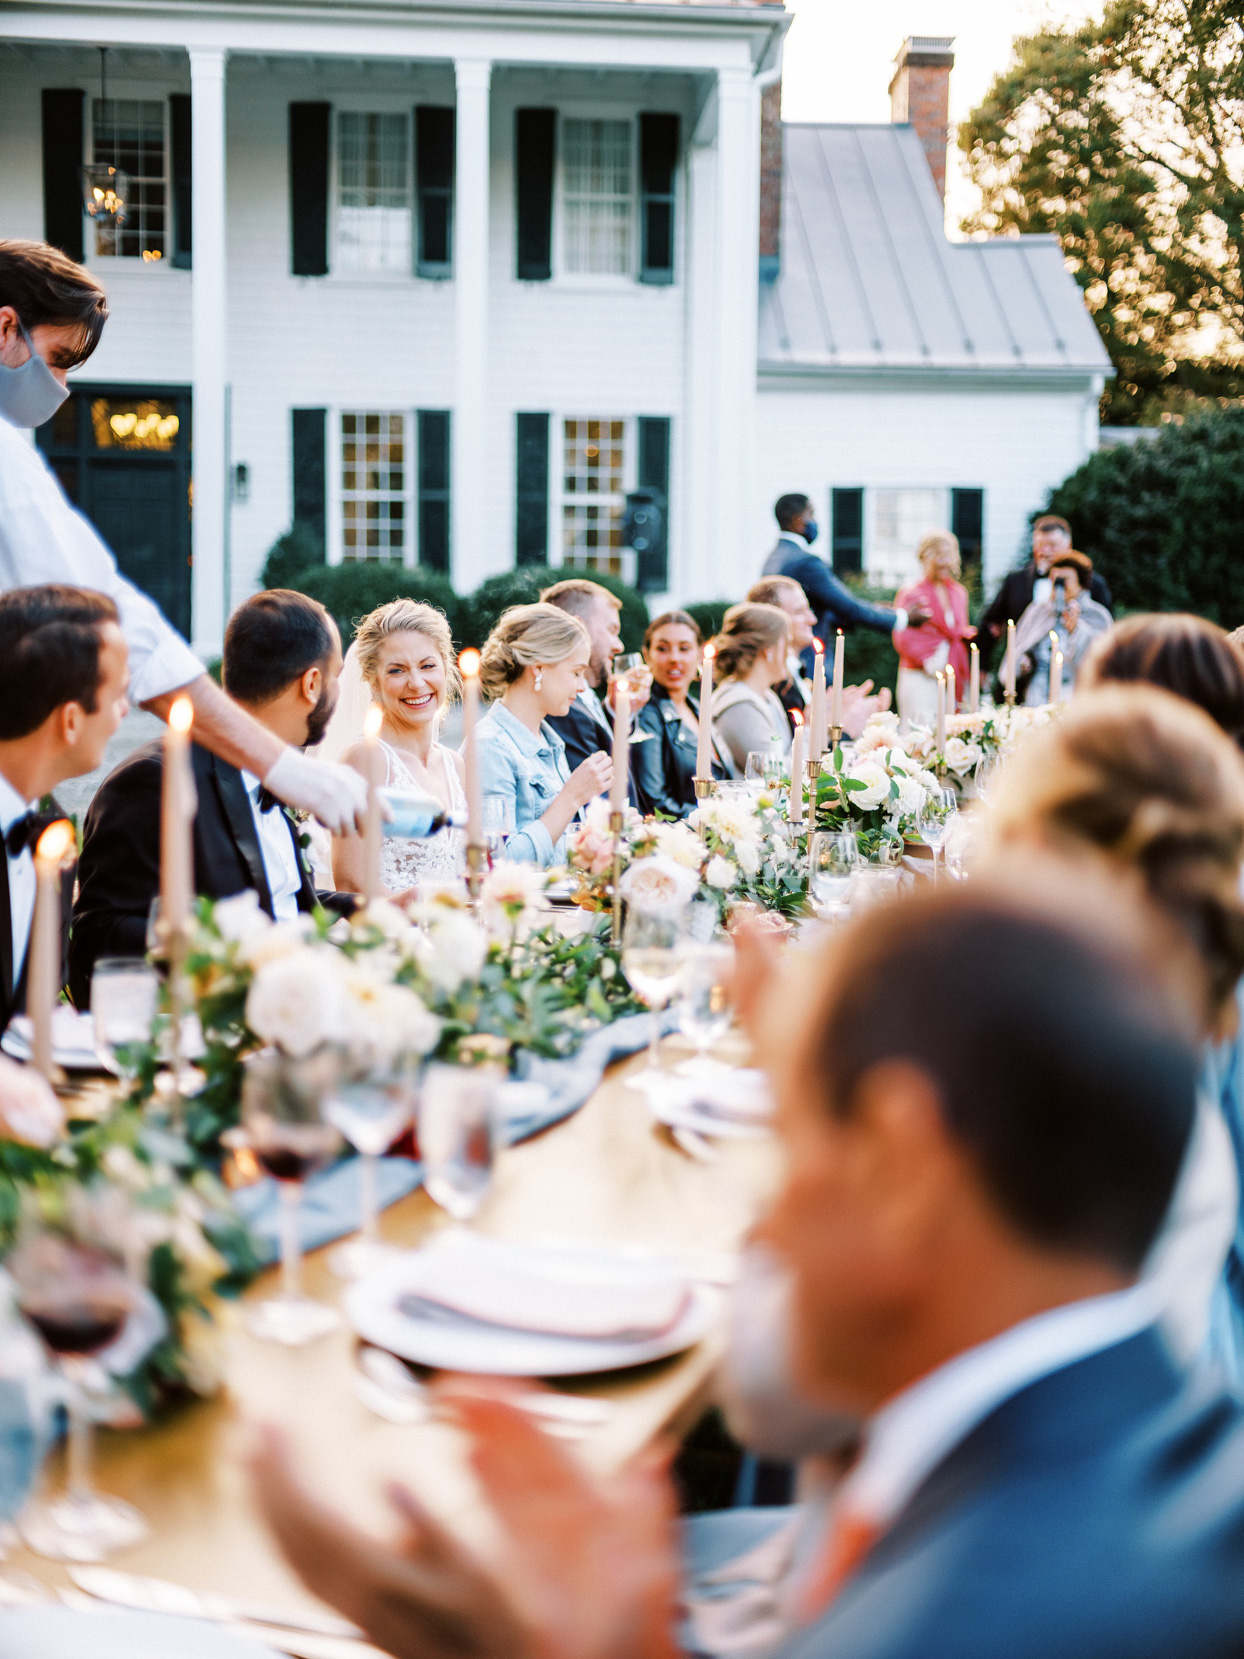 long outdoor table with guests eating wedding dinner